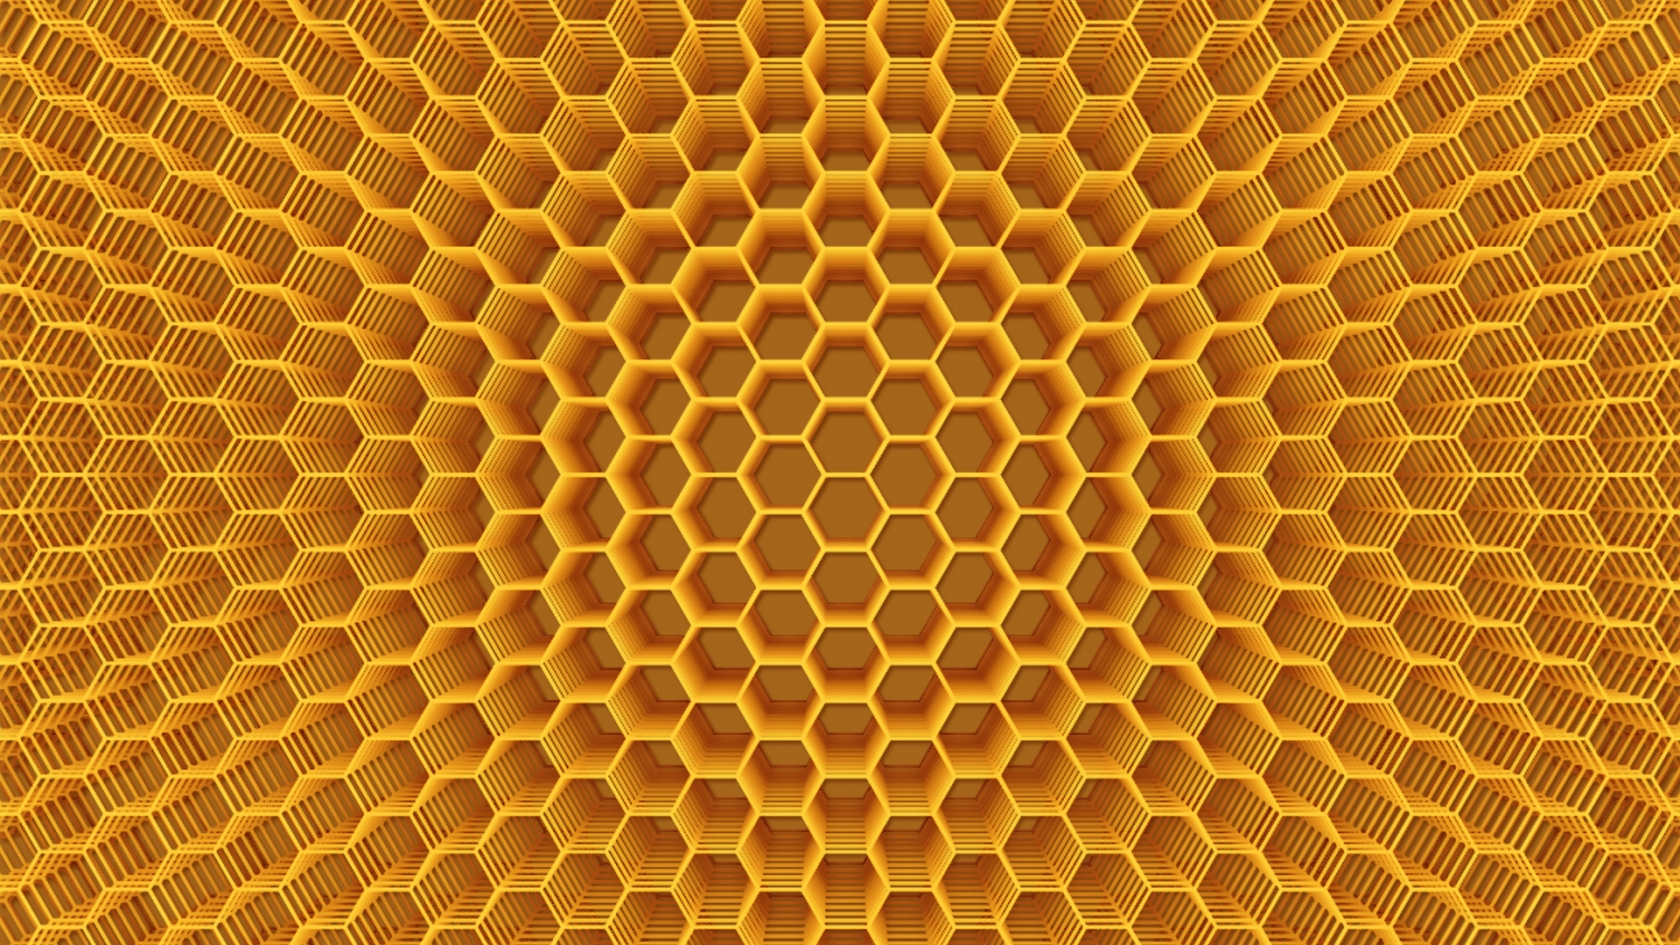 Abstract Honeycomb Structure for 1680 x 945 HDTV resolution